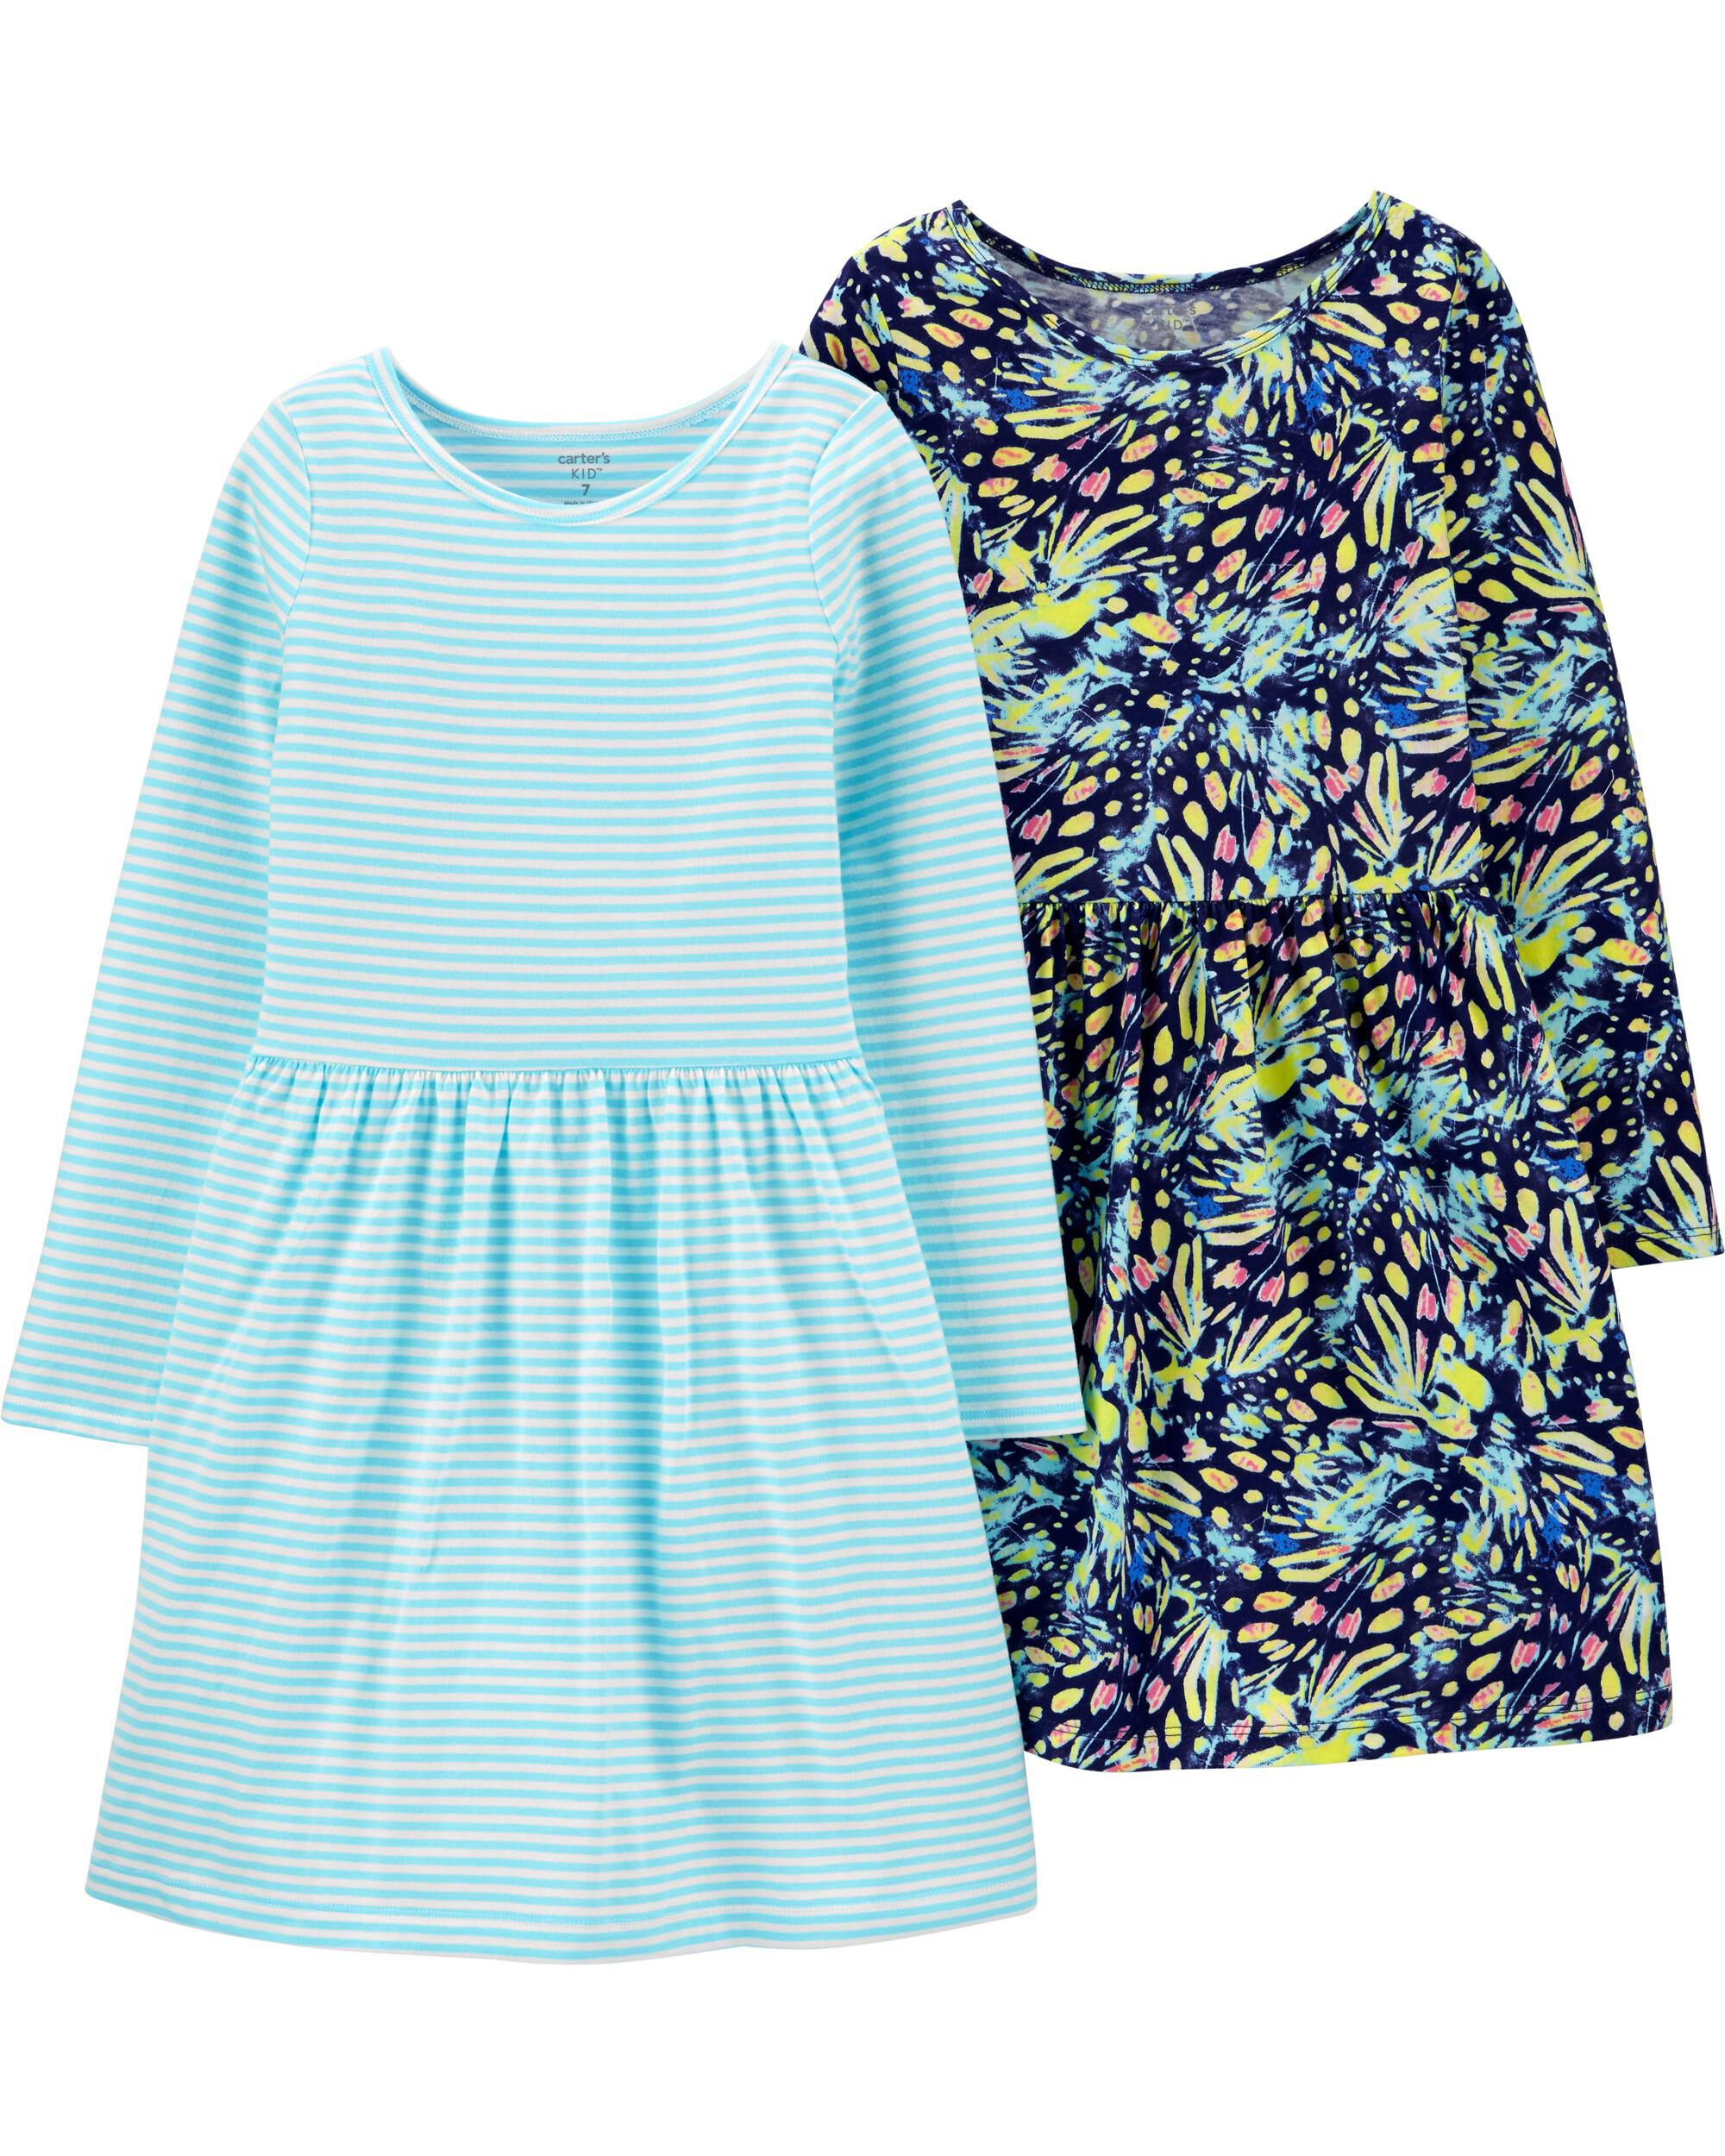 *Clearance*  2-Pack Butterfly & Striped Jersey D...